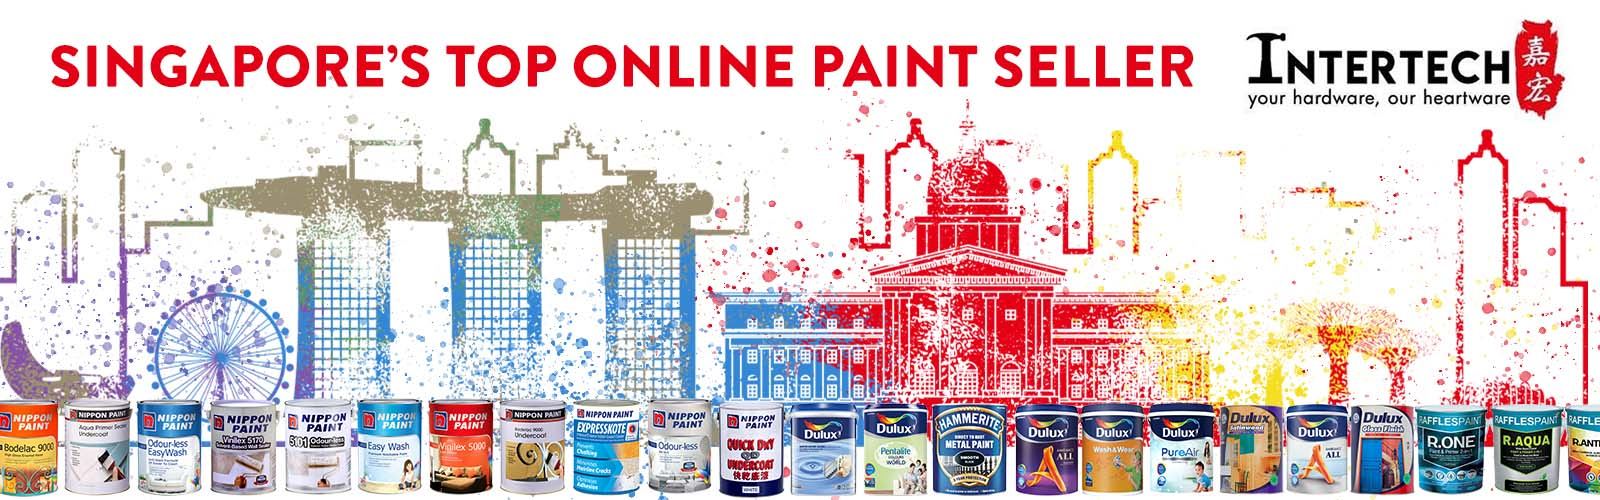 Intertech Paint Shop - home of best selling paints Nippon Paint, Raffles Paint and Dulux